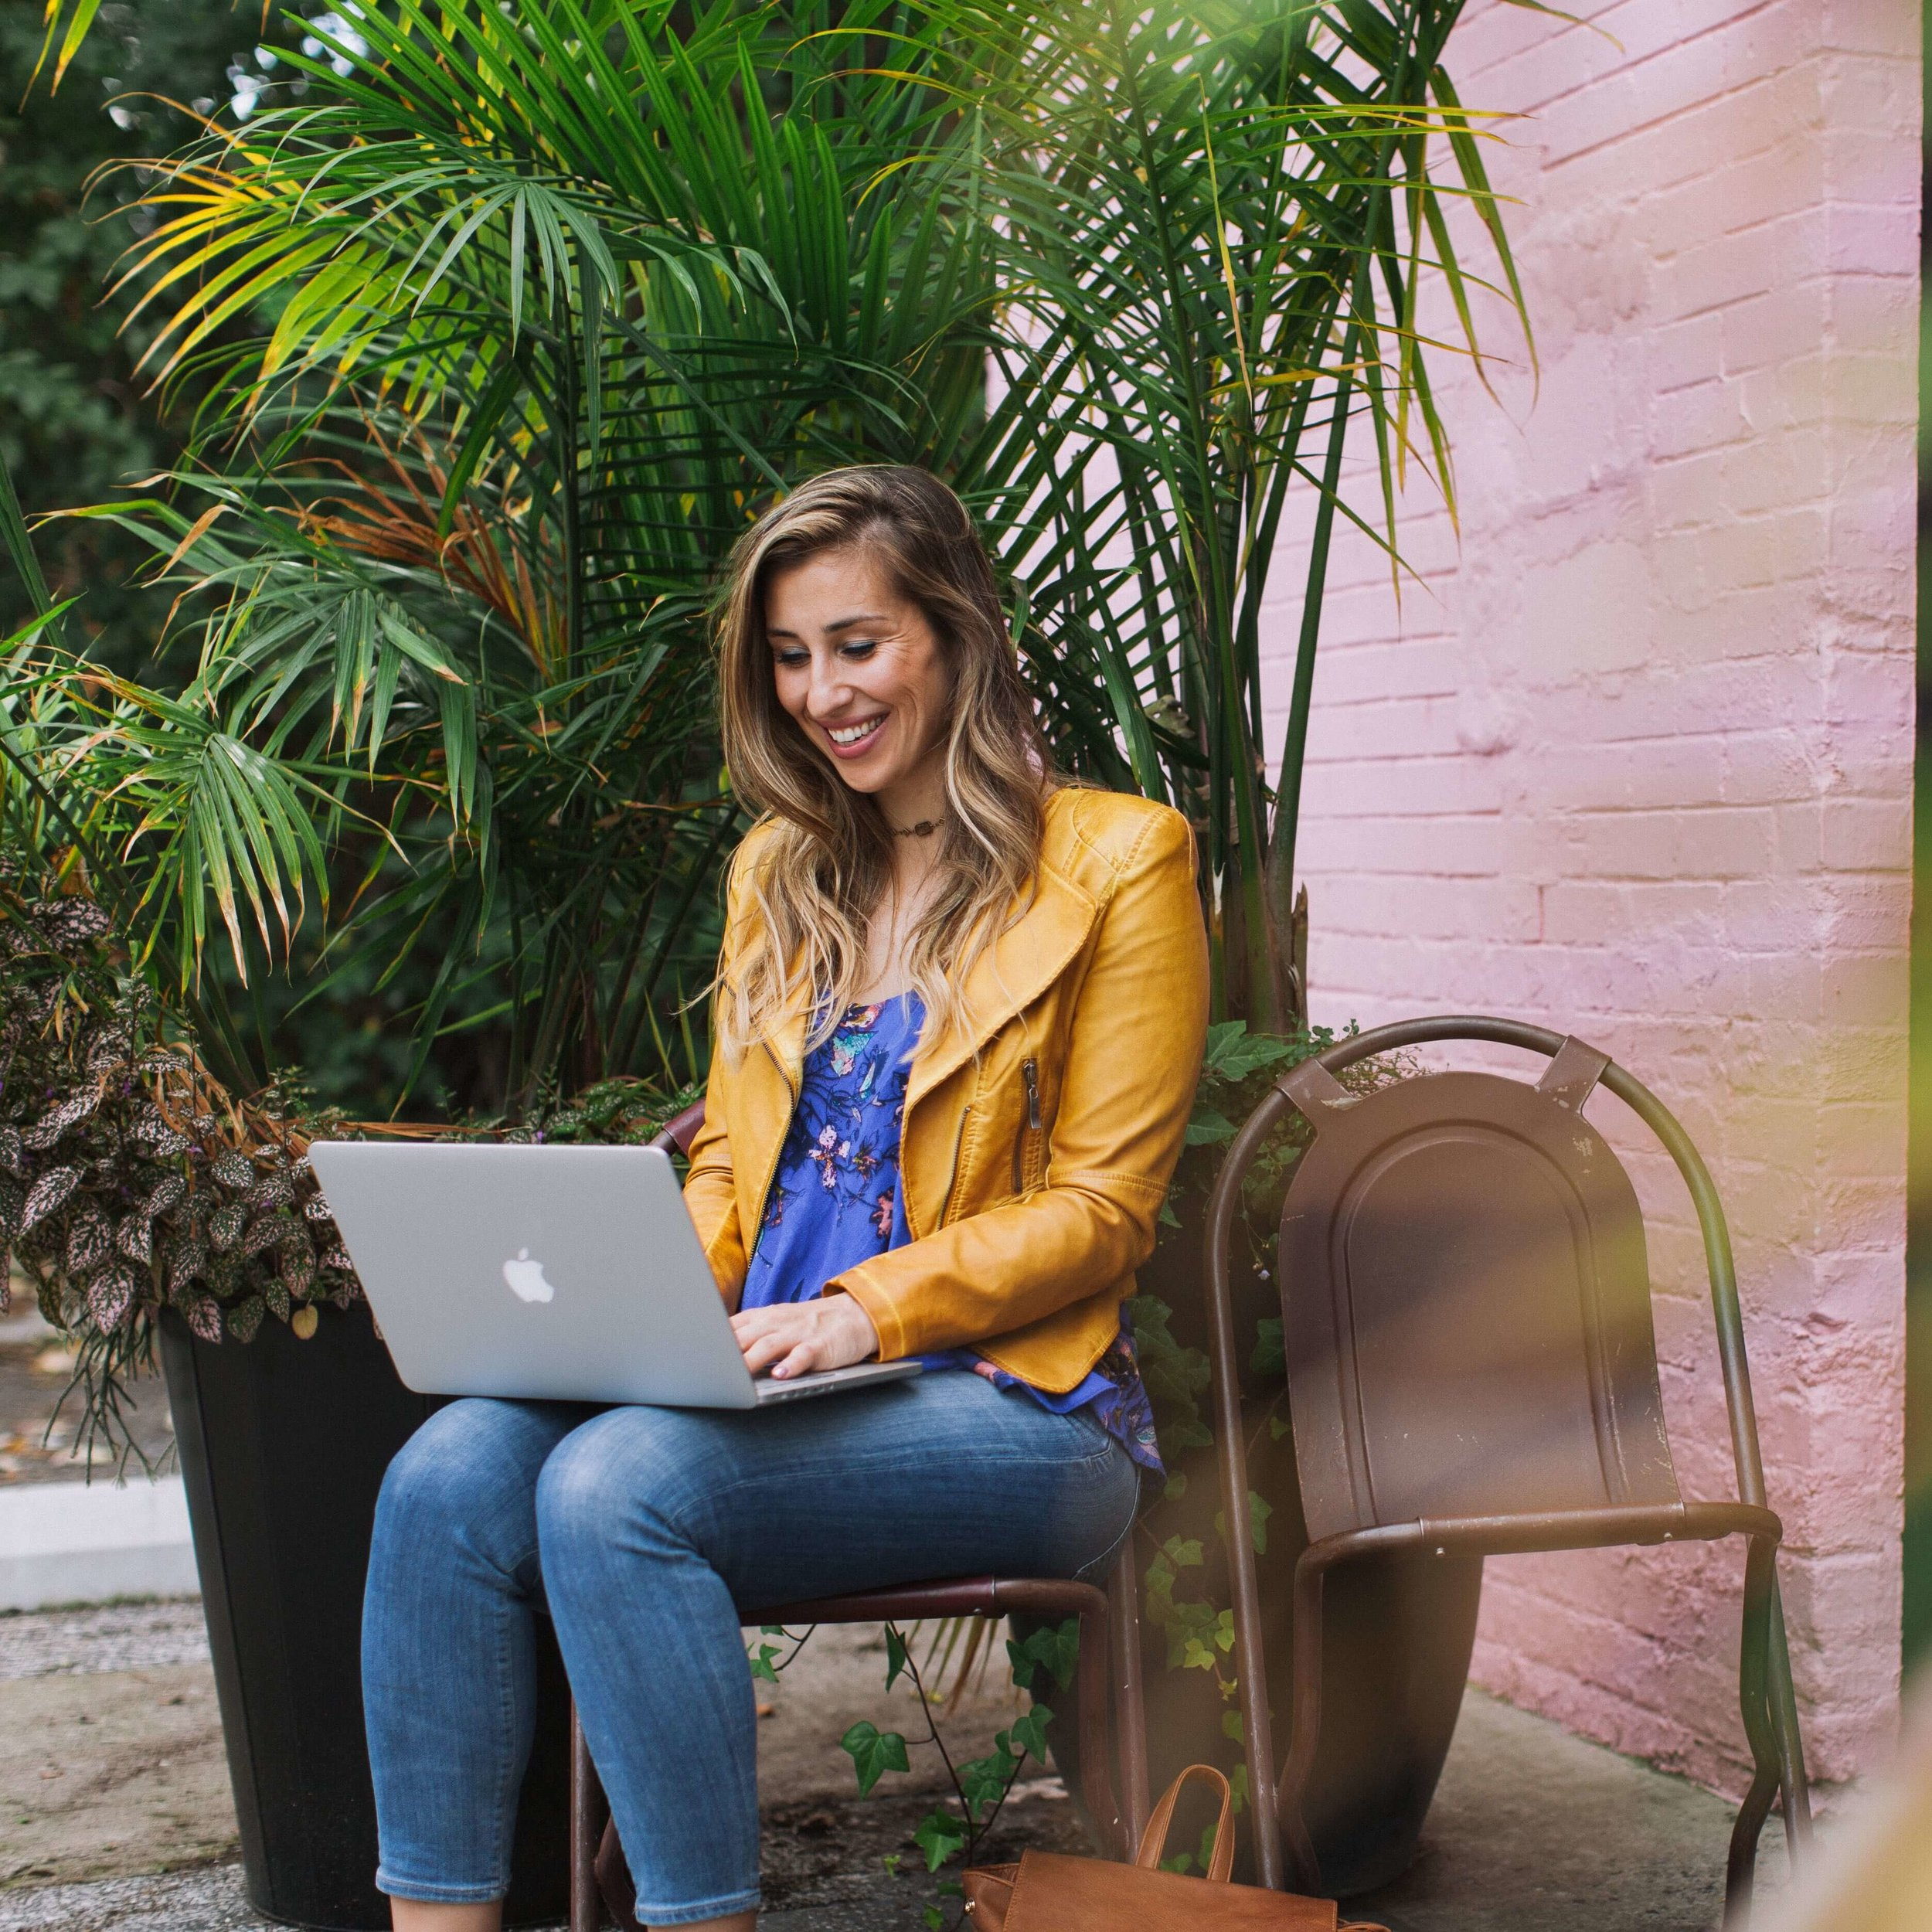 Elise Darma - Freelancer, Instagram Marketer and Digital Nomad